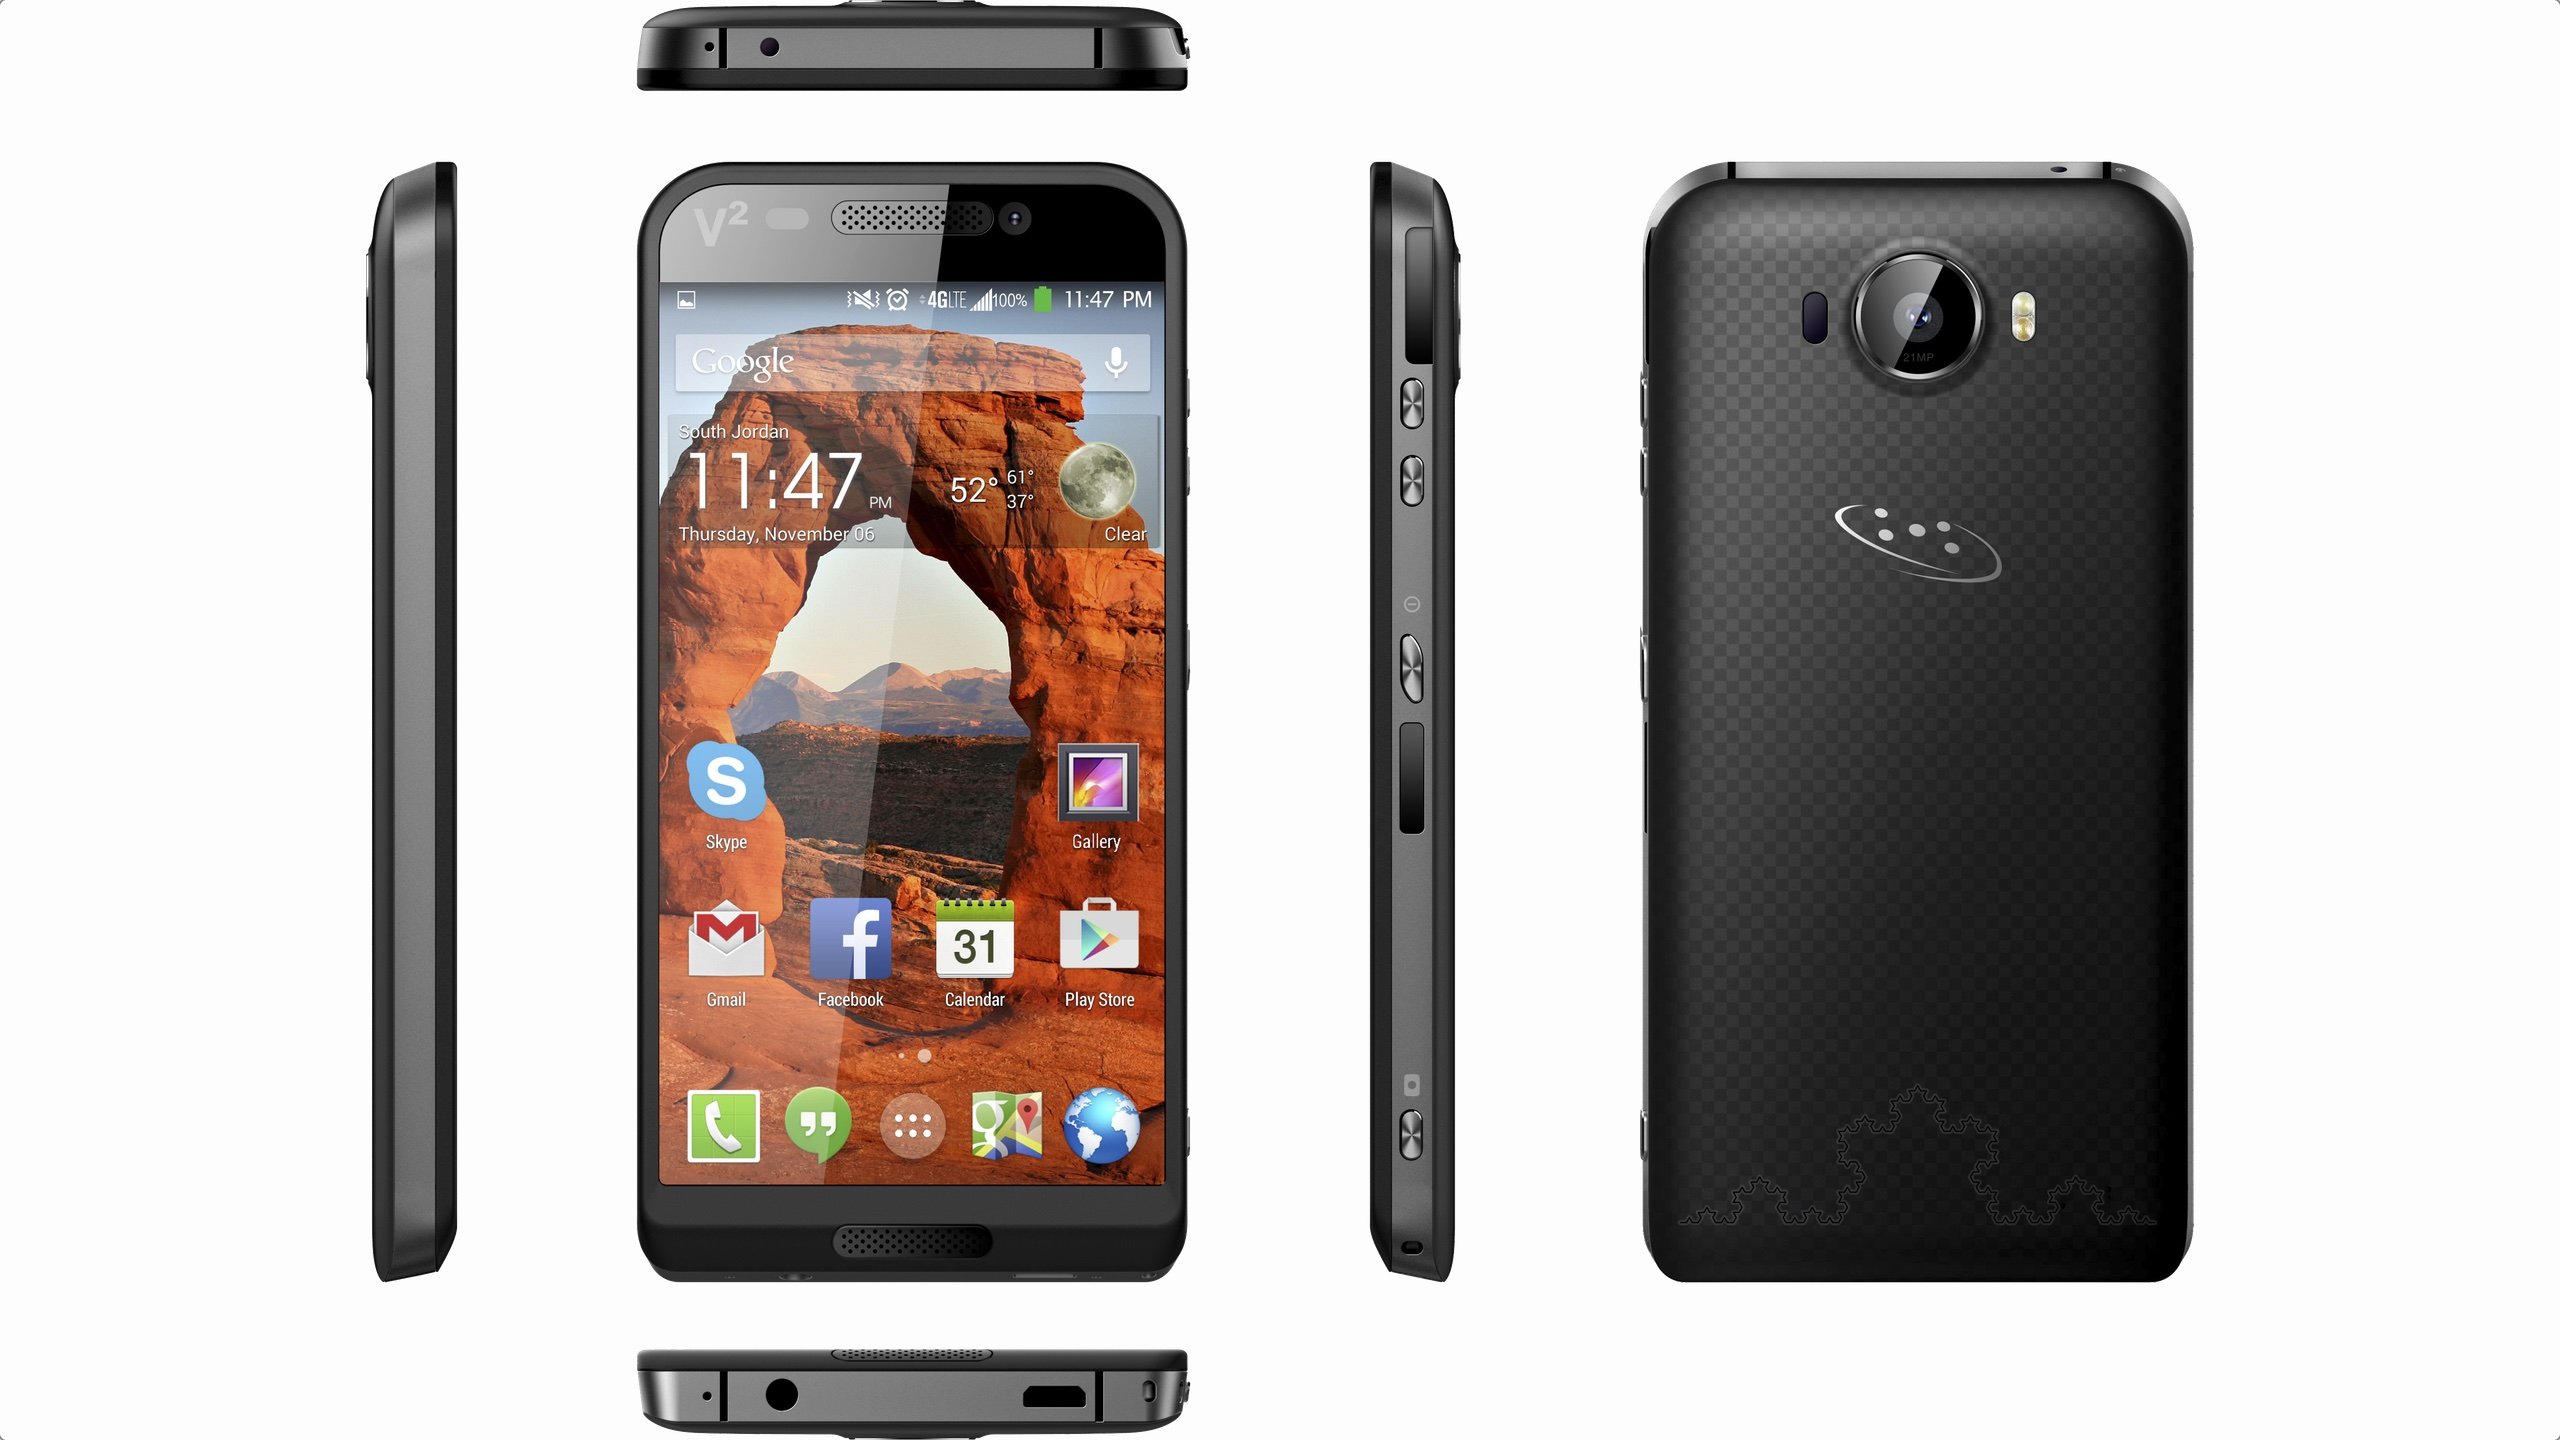 saygus-v2-android-smartphone